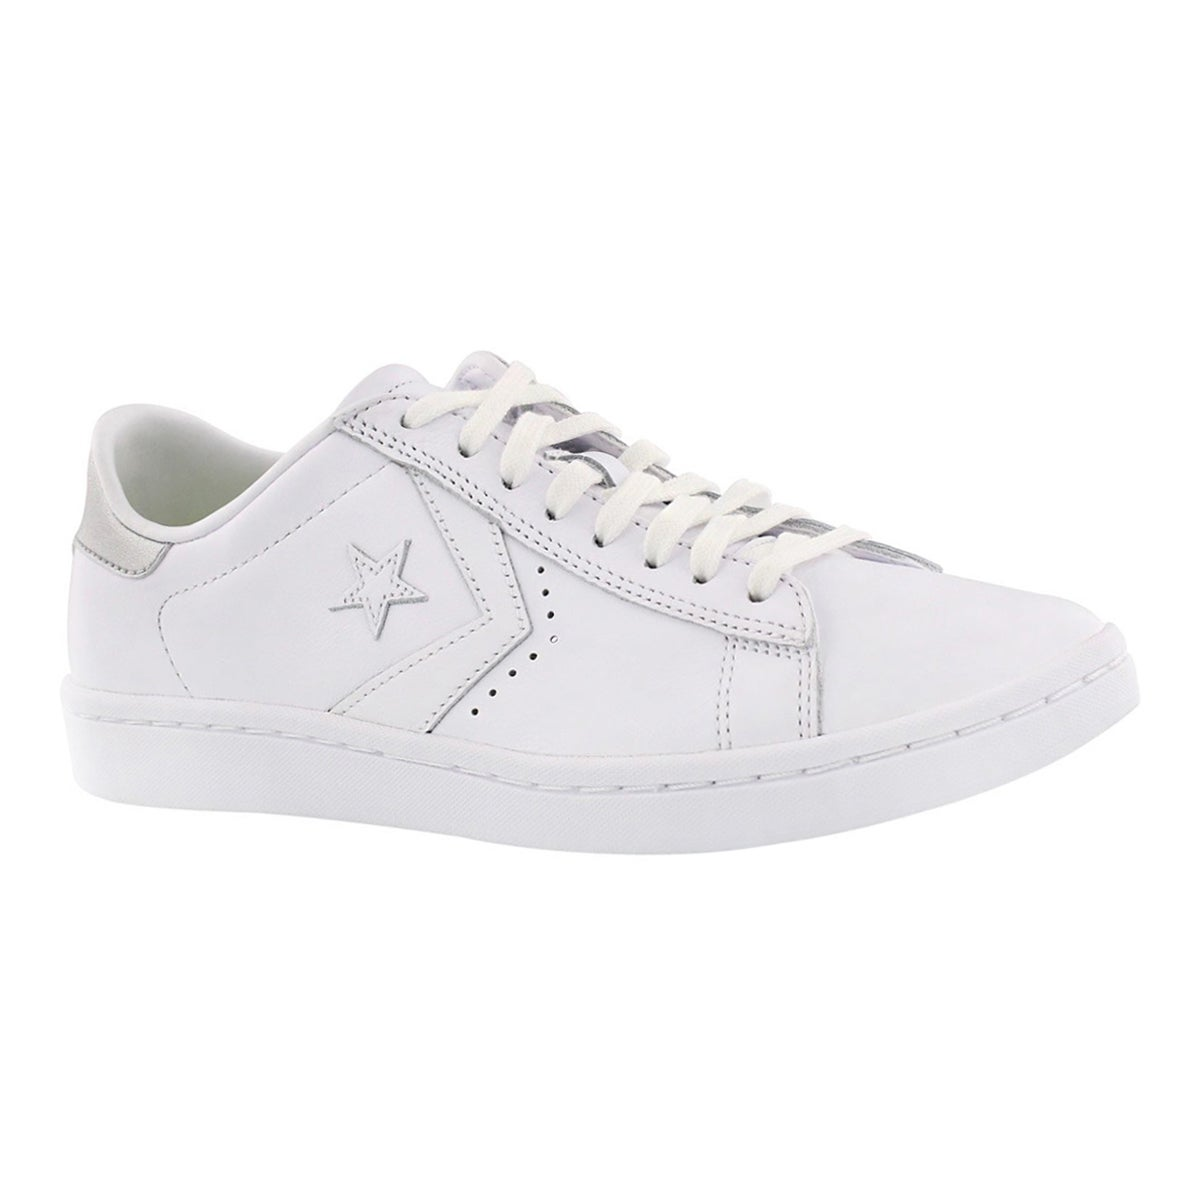 Women's PL LP white/silver metallic sneakers